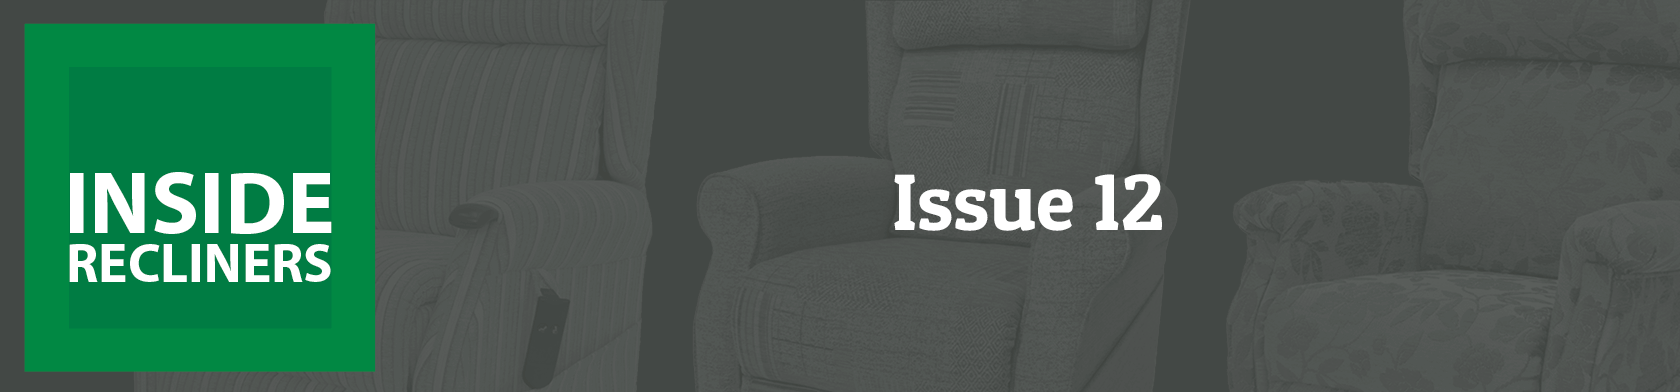 Inside Recliners — Issue 12